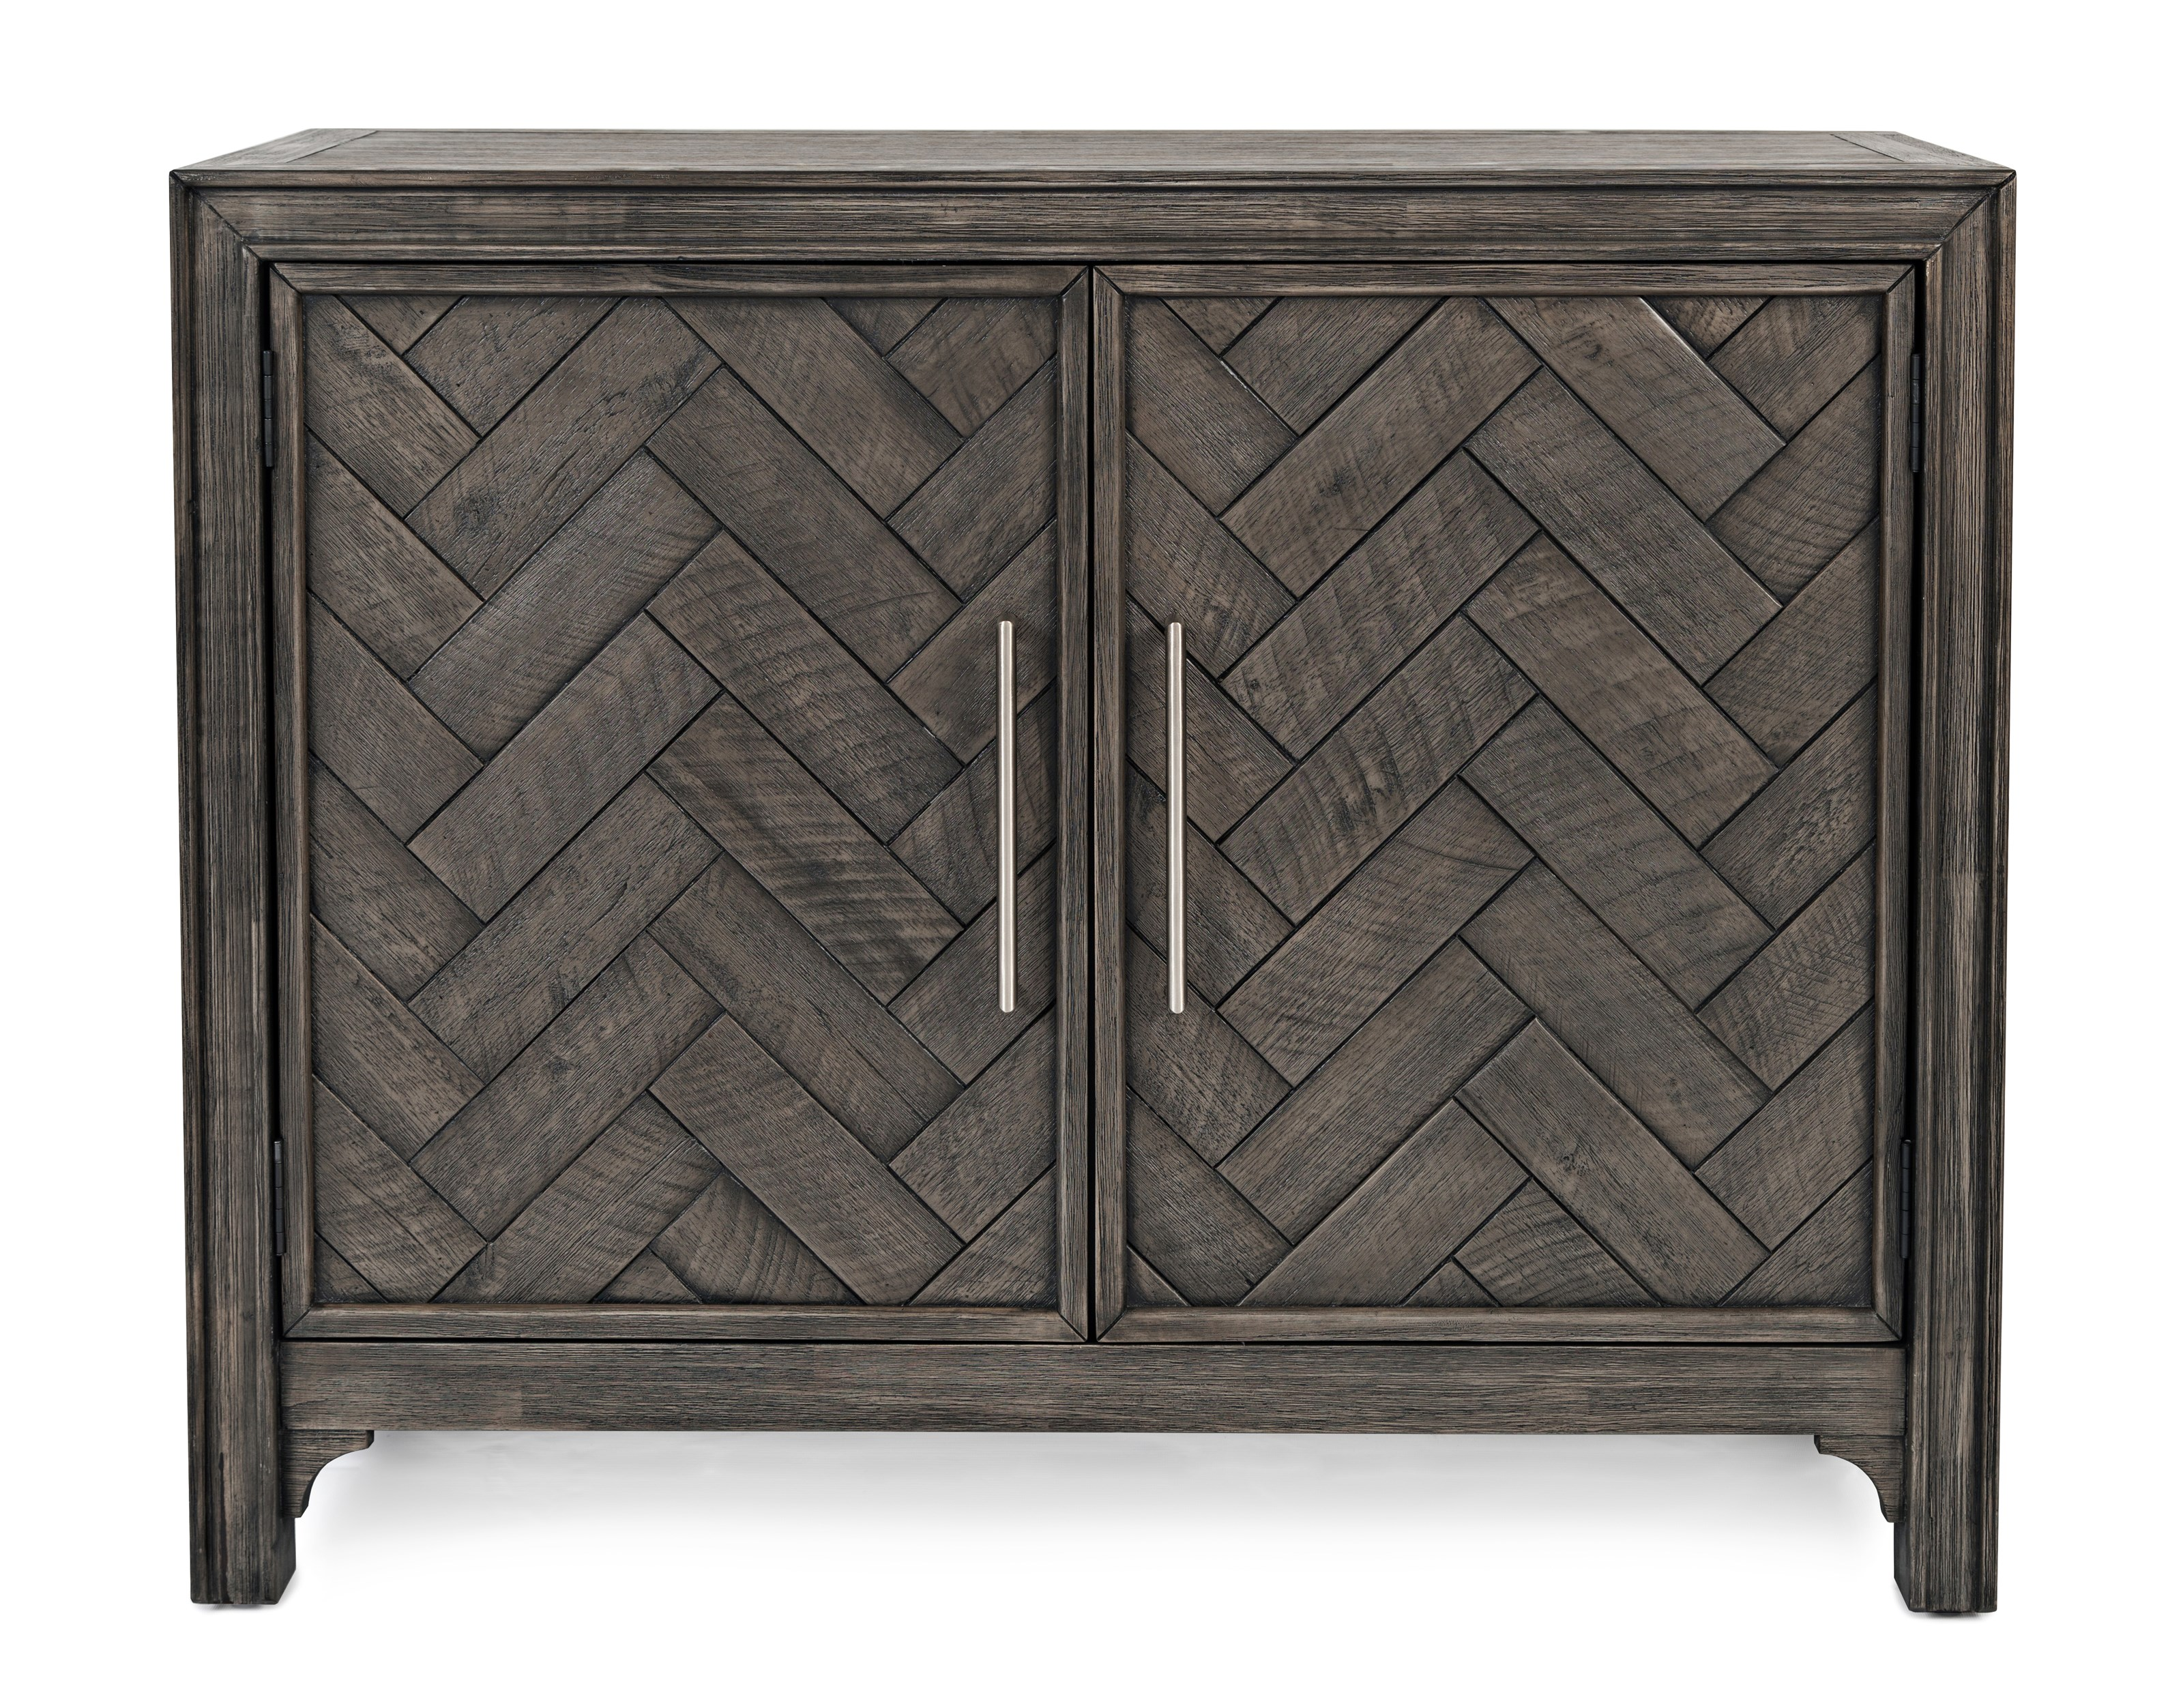 Gramercy Chevron Accent Cabinet by Jofran at Stoney Creek Furniture